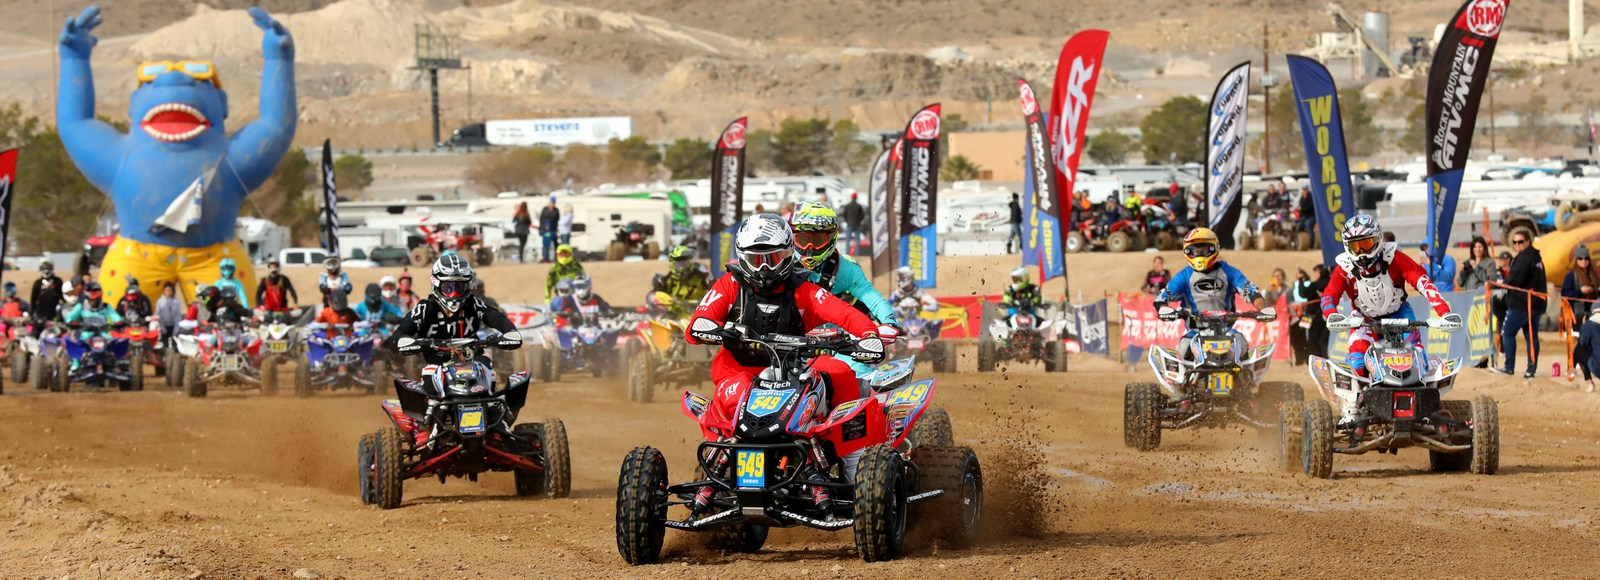 2019-01-beau-baron-atv-holeshot-worcs-racing